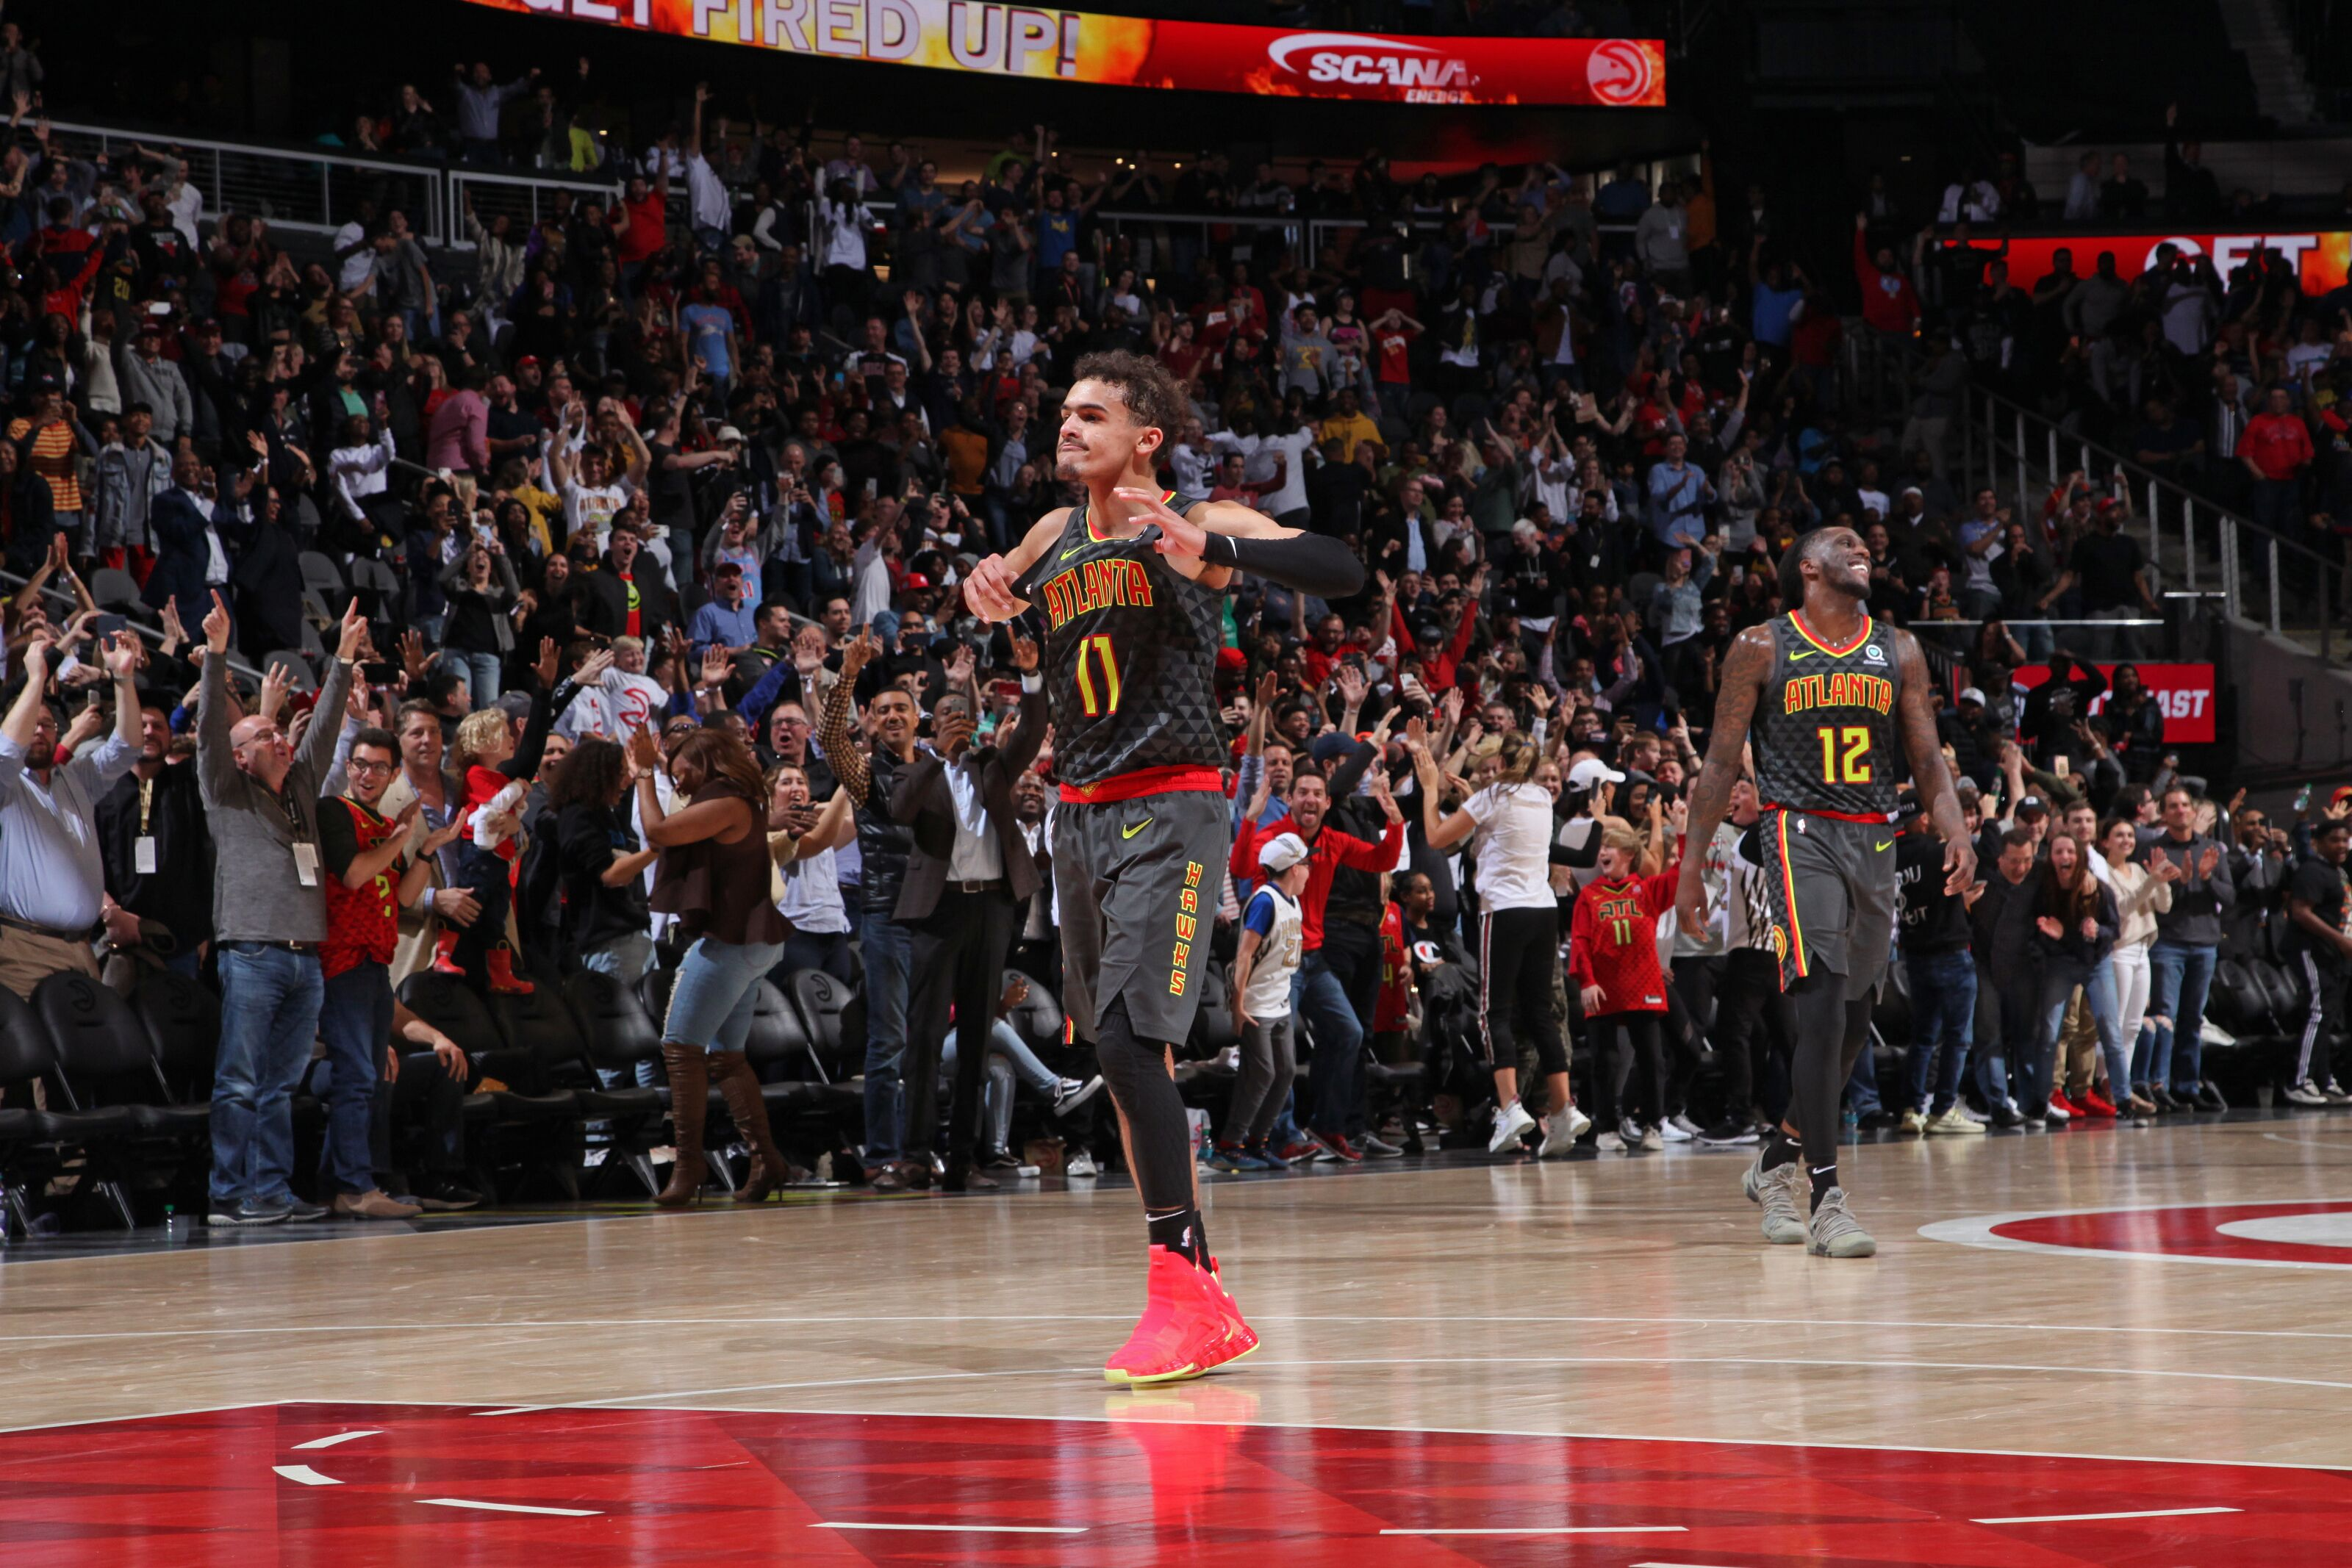 Atlanta Hawks: Trae Young Is One of the Most Clutch Players in the NBA